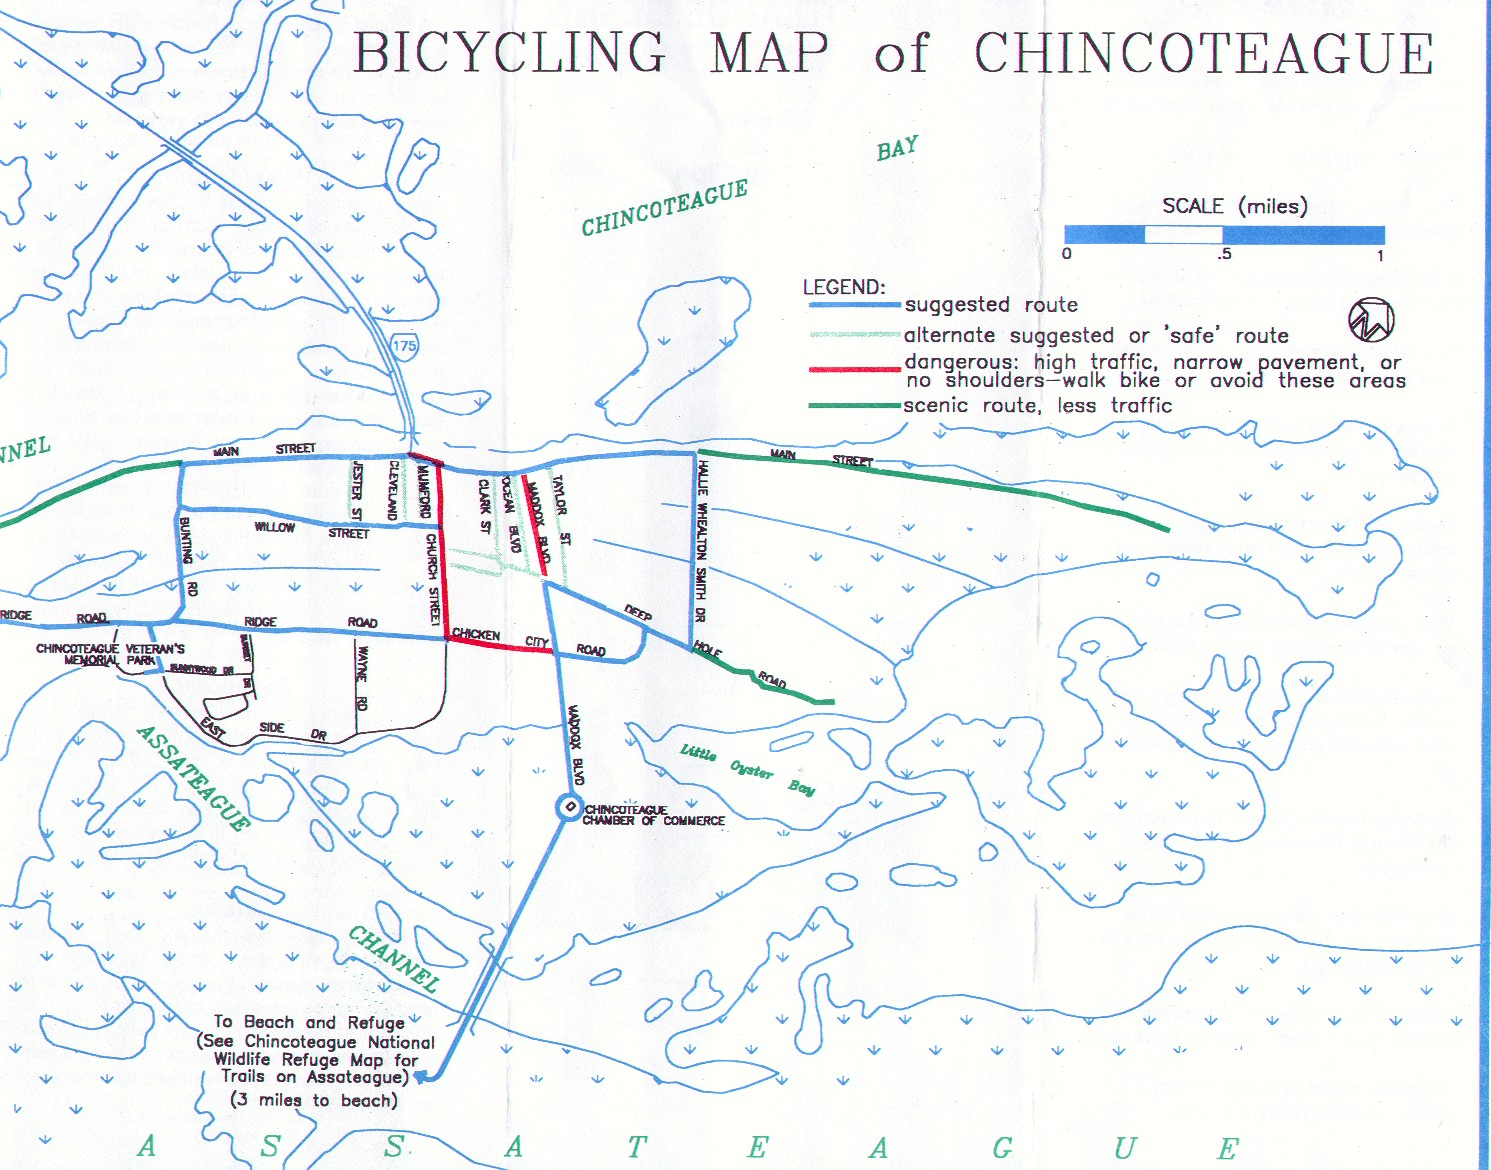 Chincoteague Island Resources